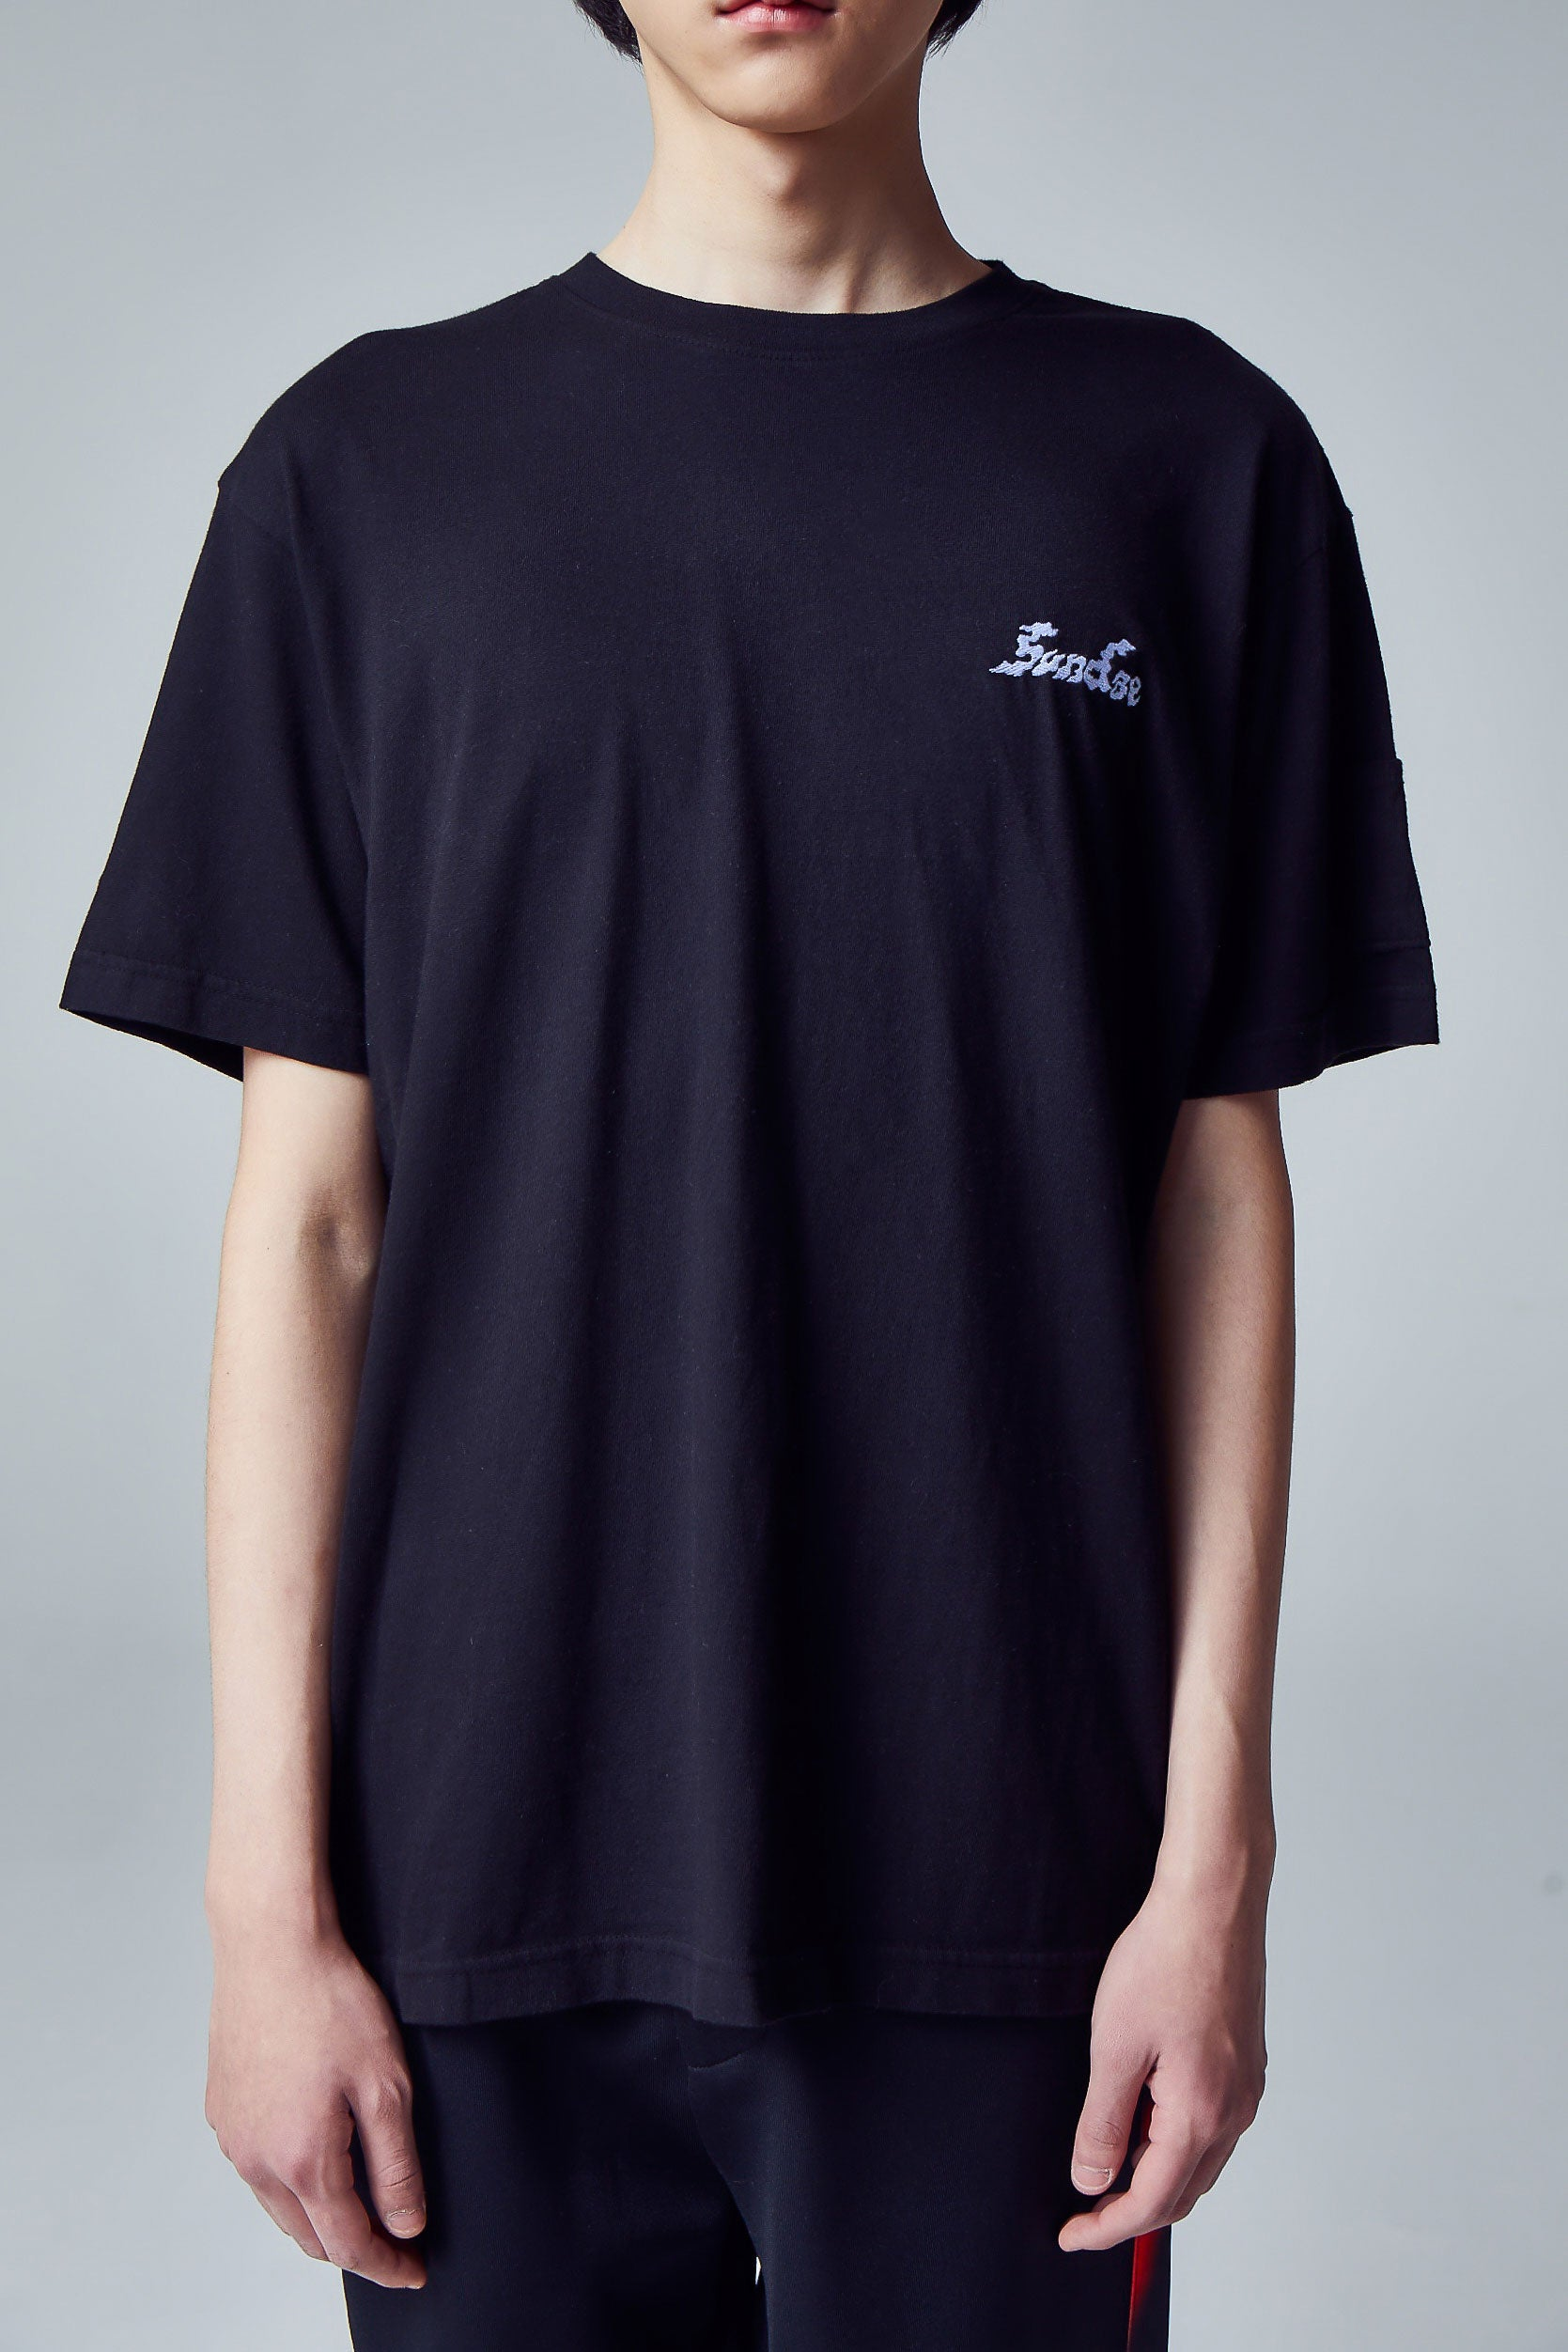 Wave Chainstitch 선 T-Shirt / Black